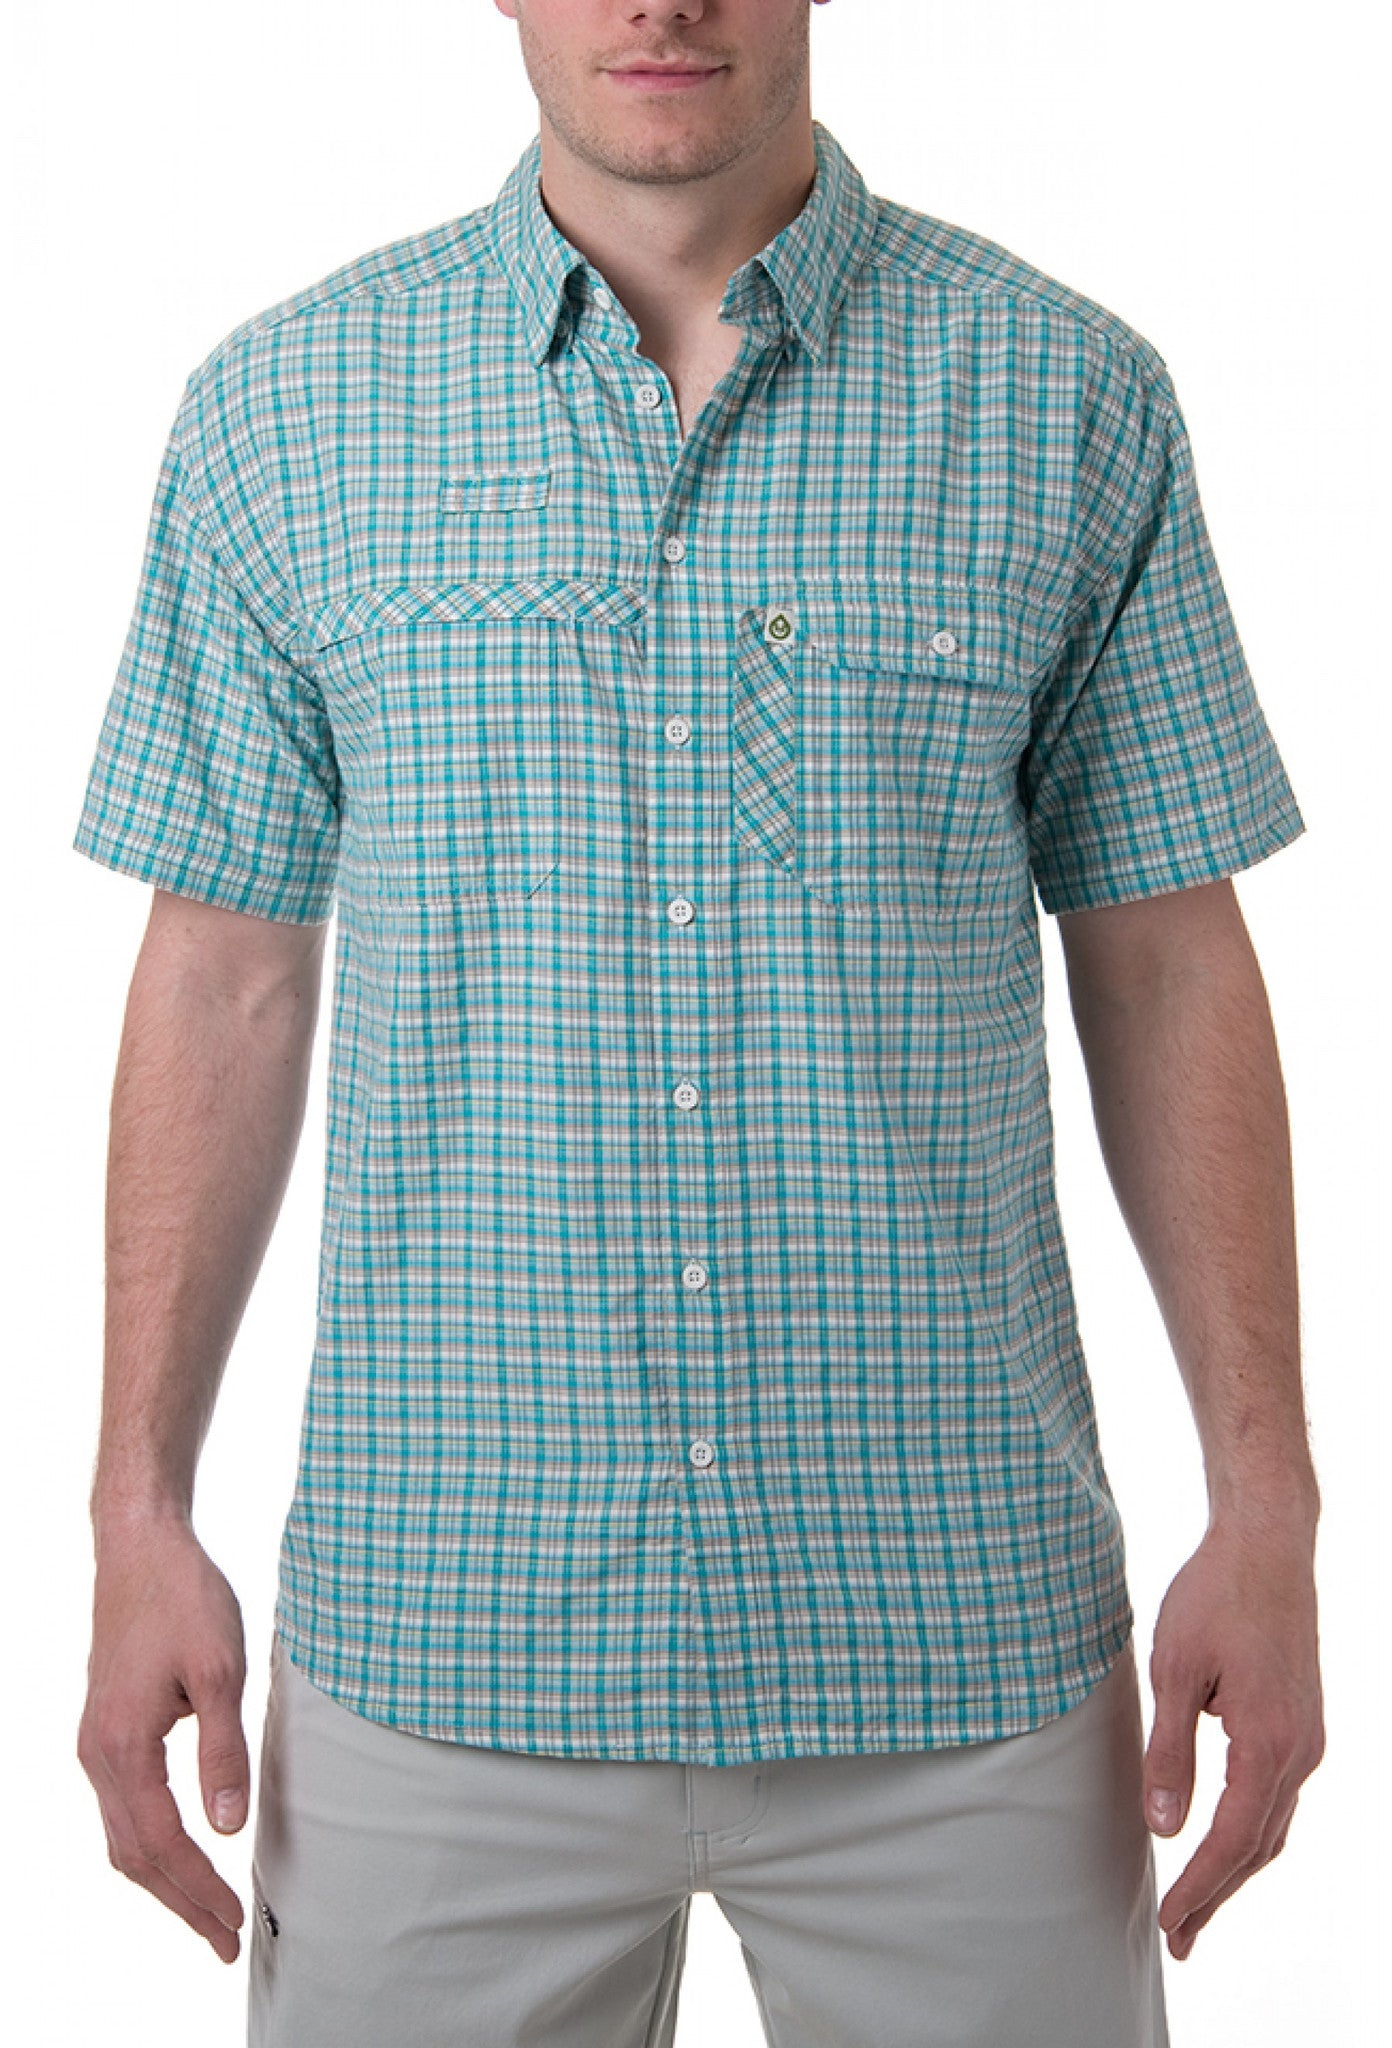 Tasc Ramble Short Sleeve Shirt T-M-379